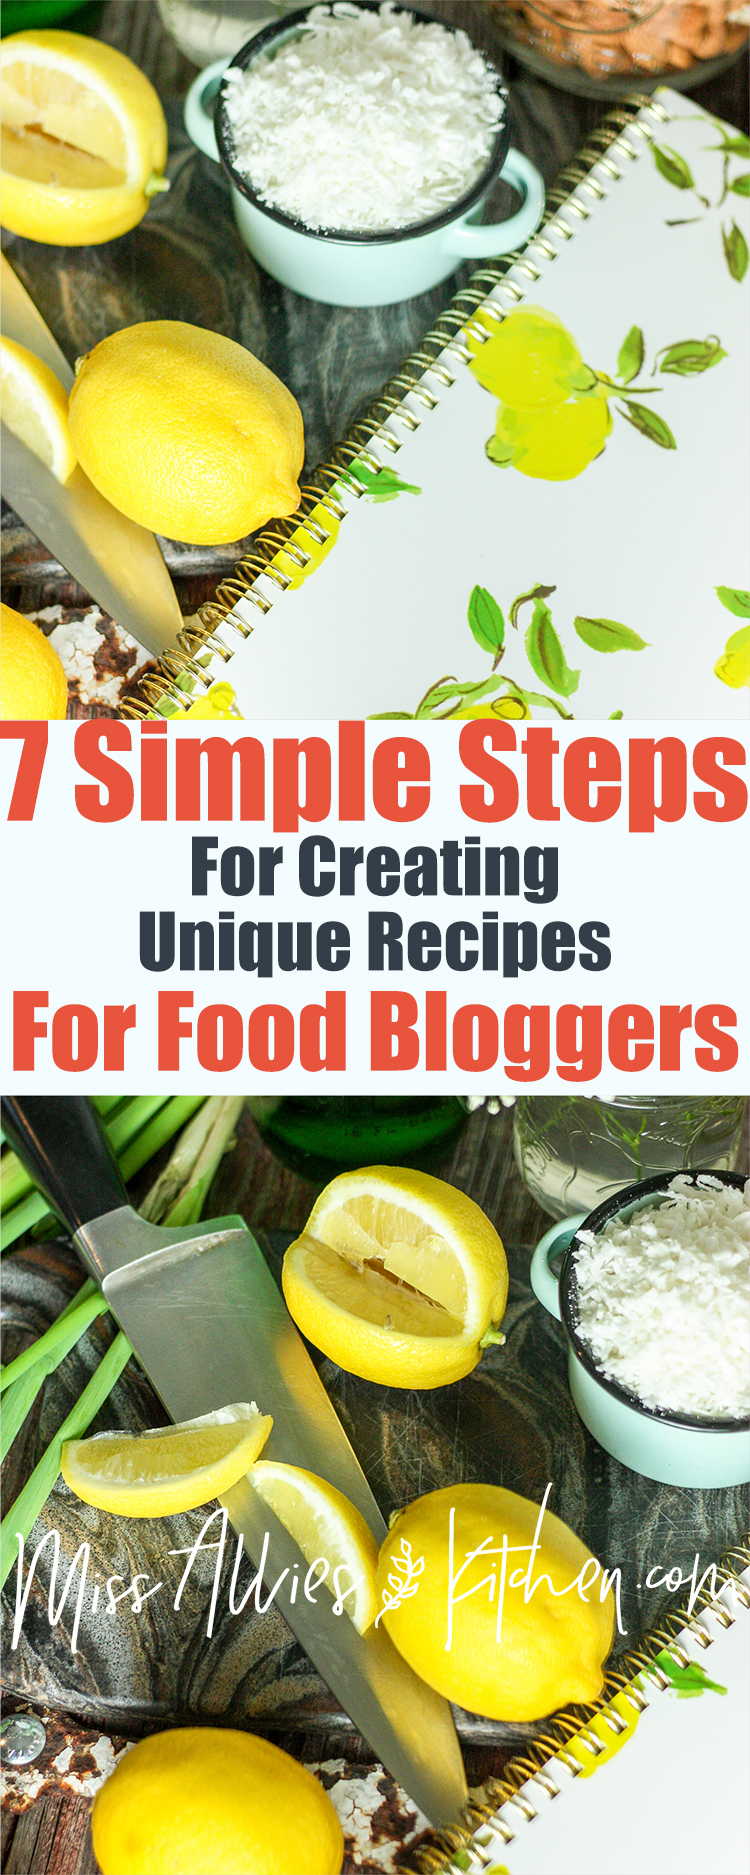 7 Simple Steps for Creating Unique Recipes for Food Bloggers